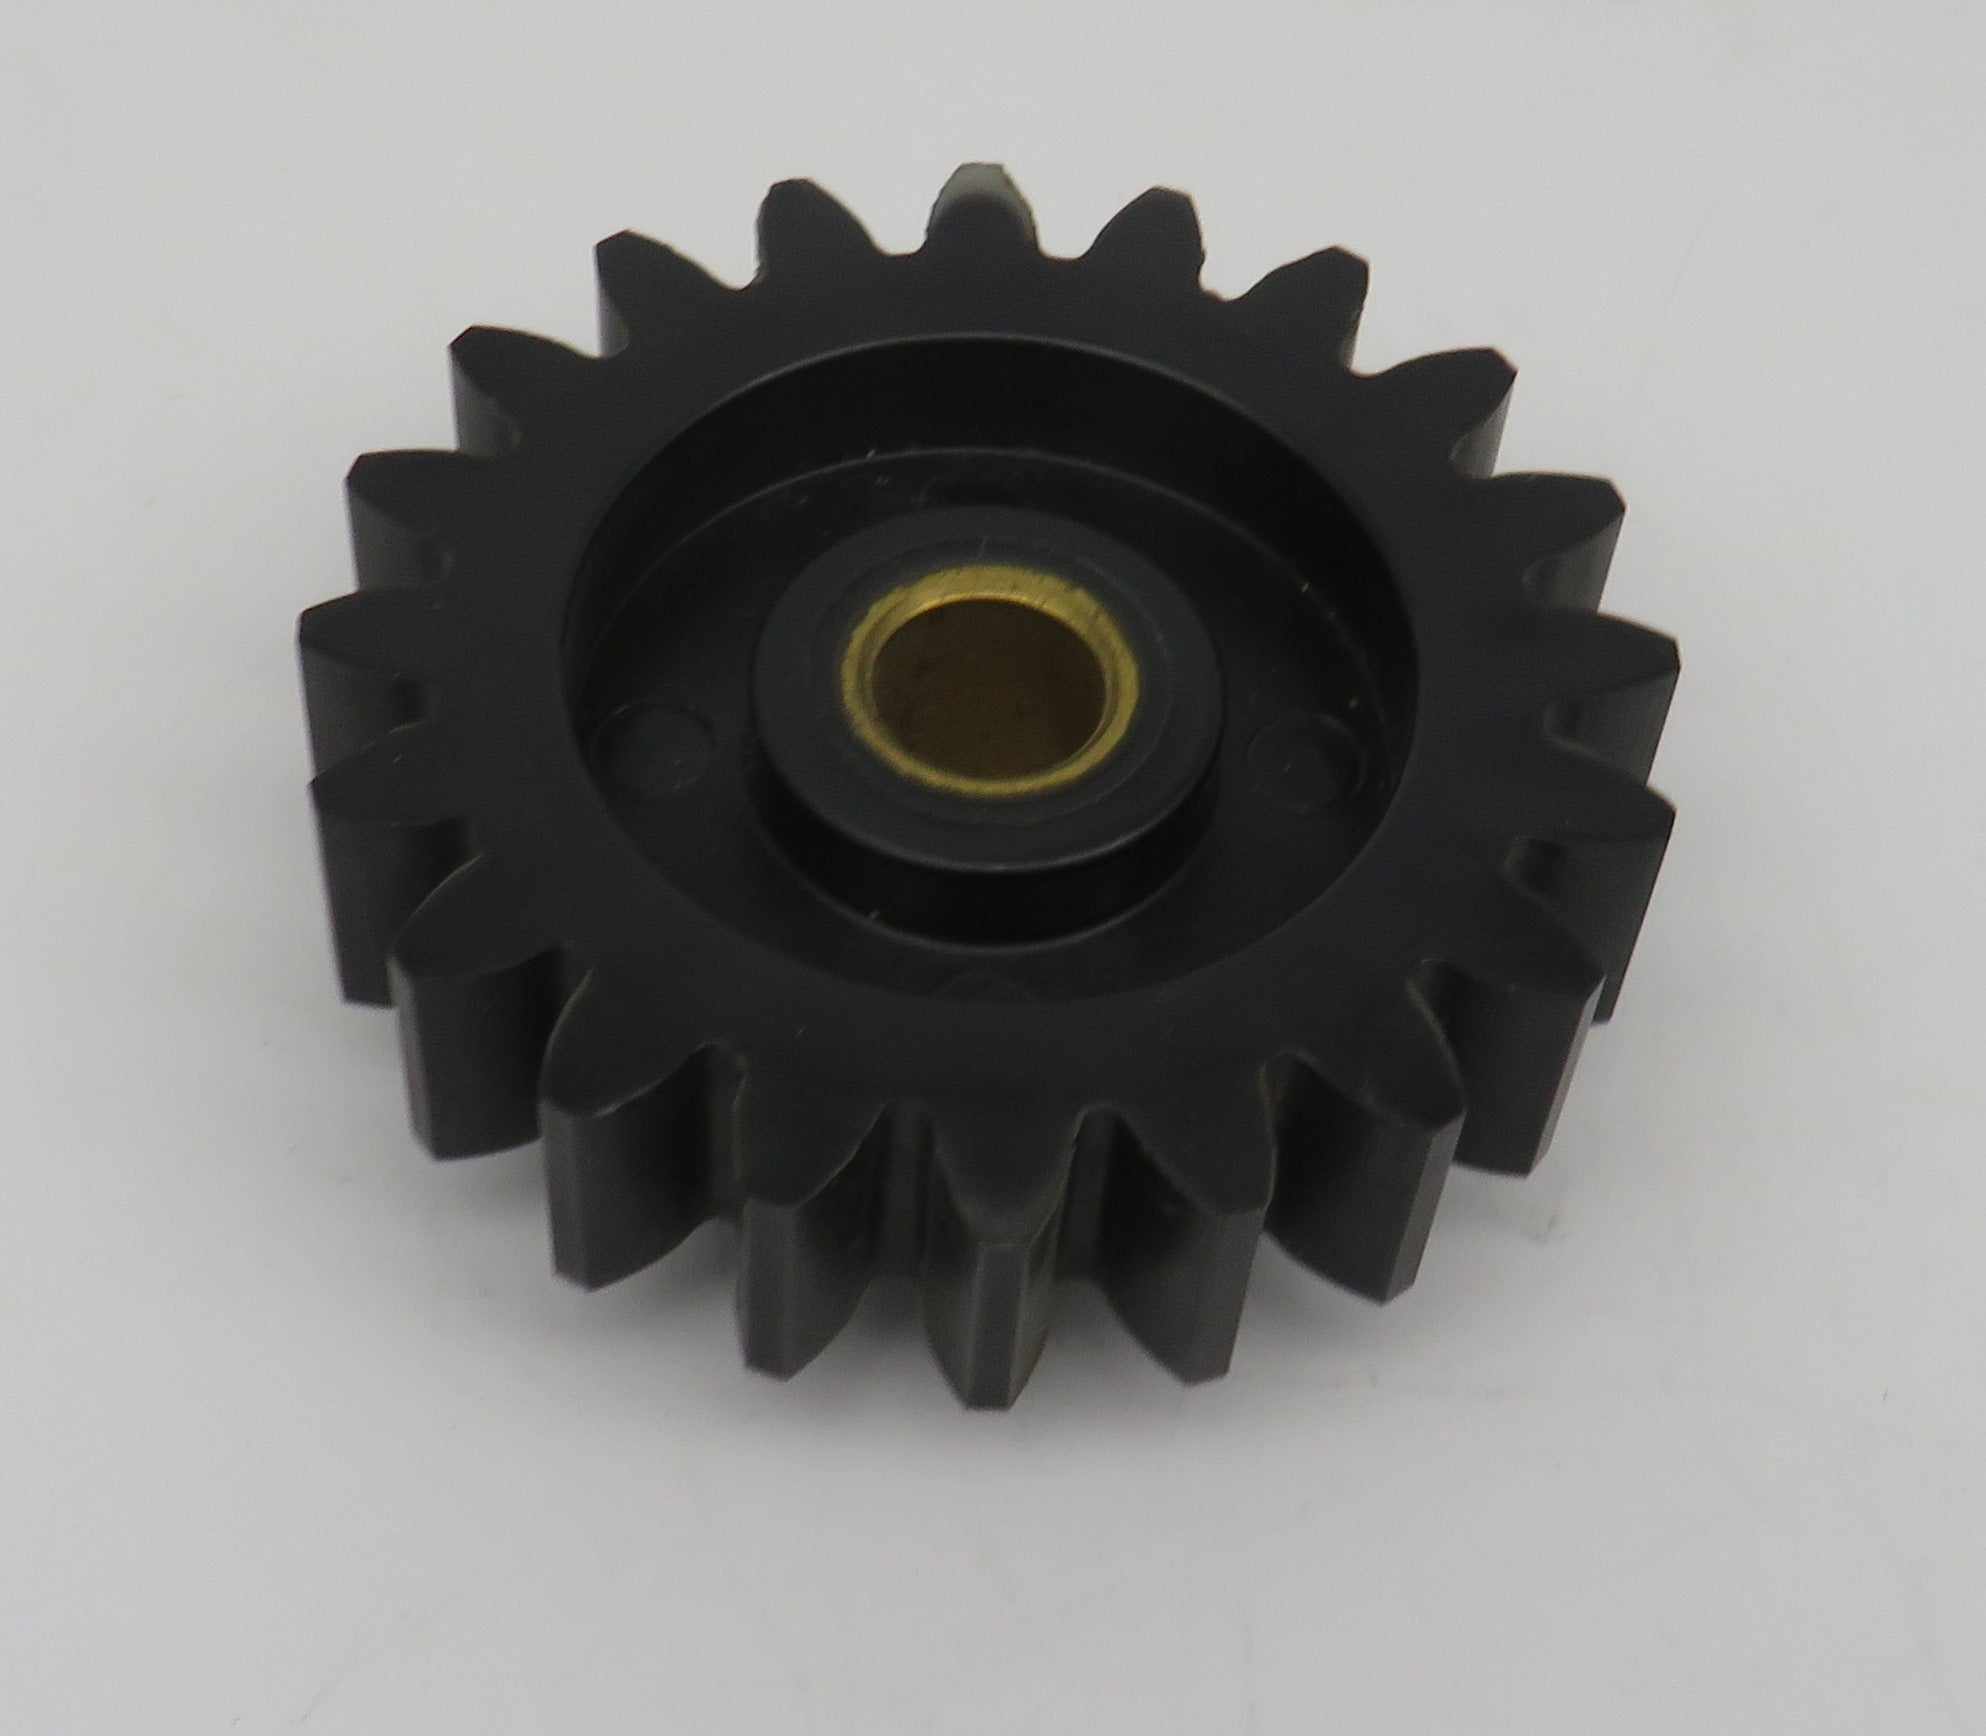 9902 Sherwood Drive Pulley Gear for Owens Flagship V-8 (Obsolete)